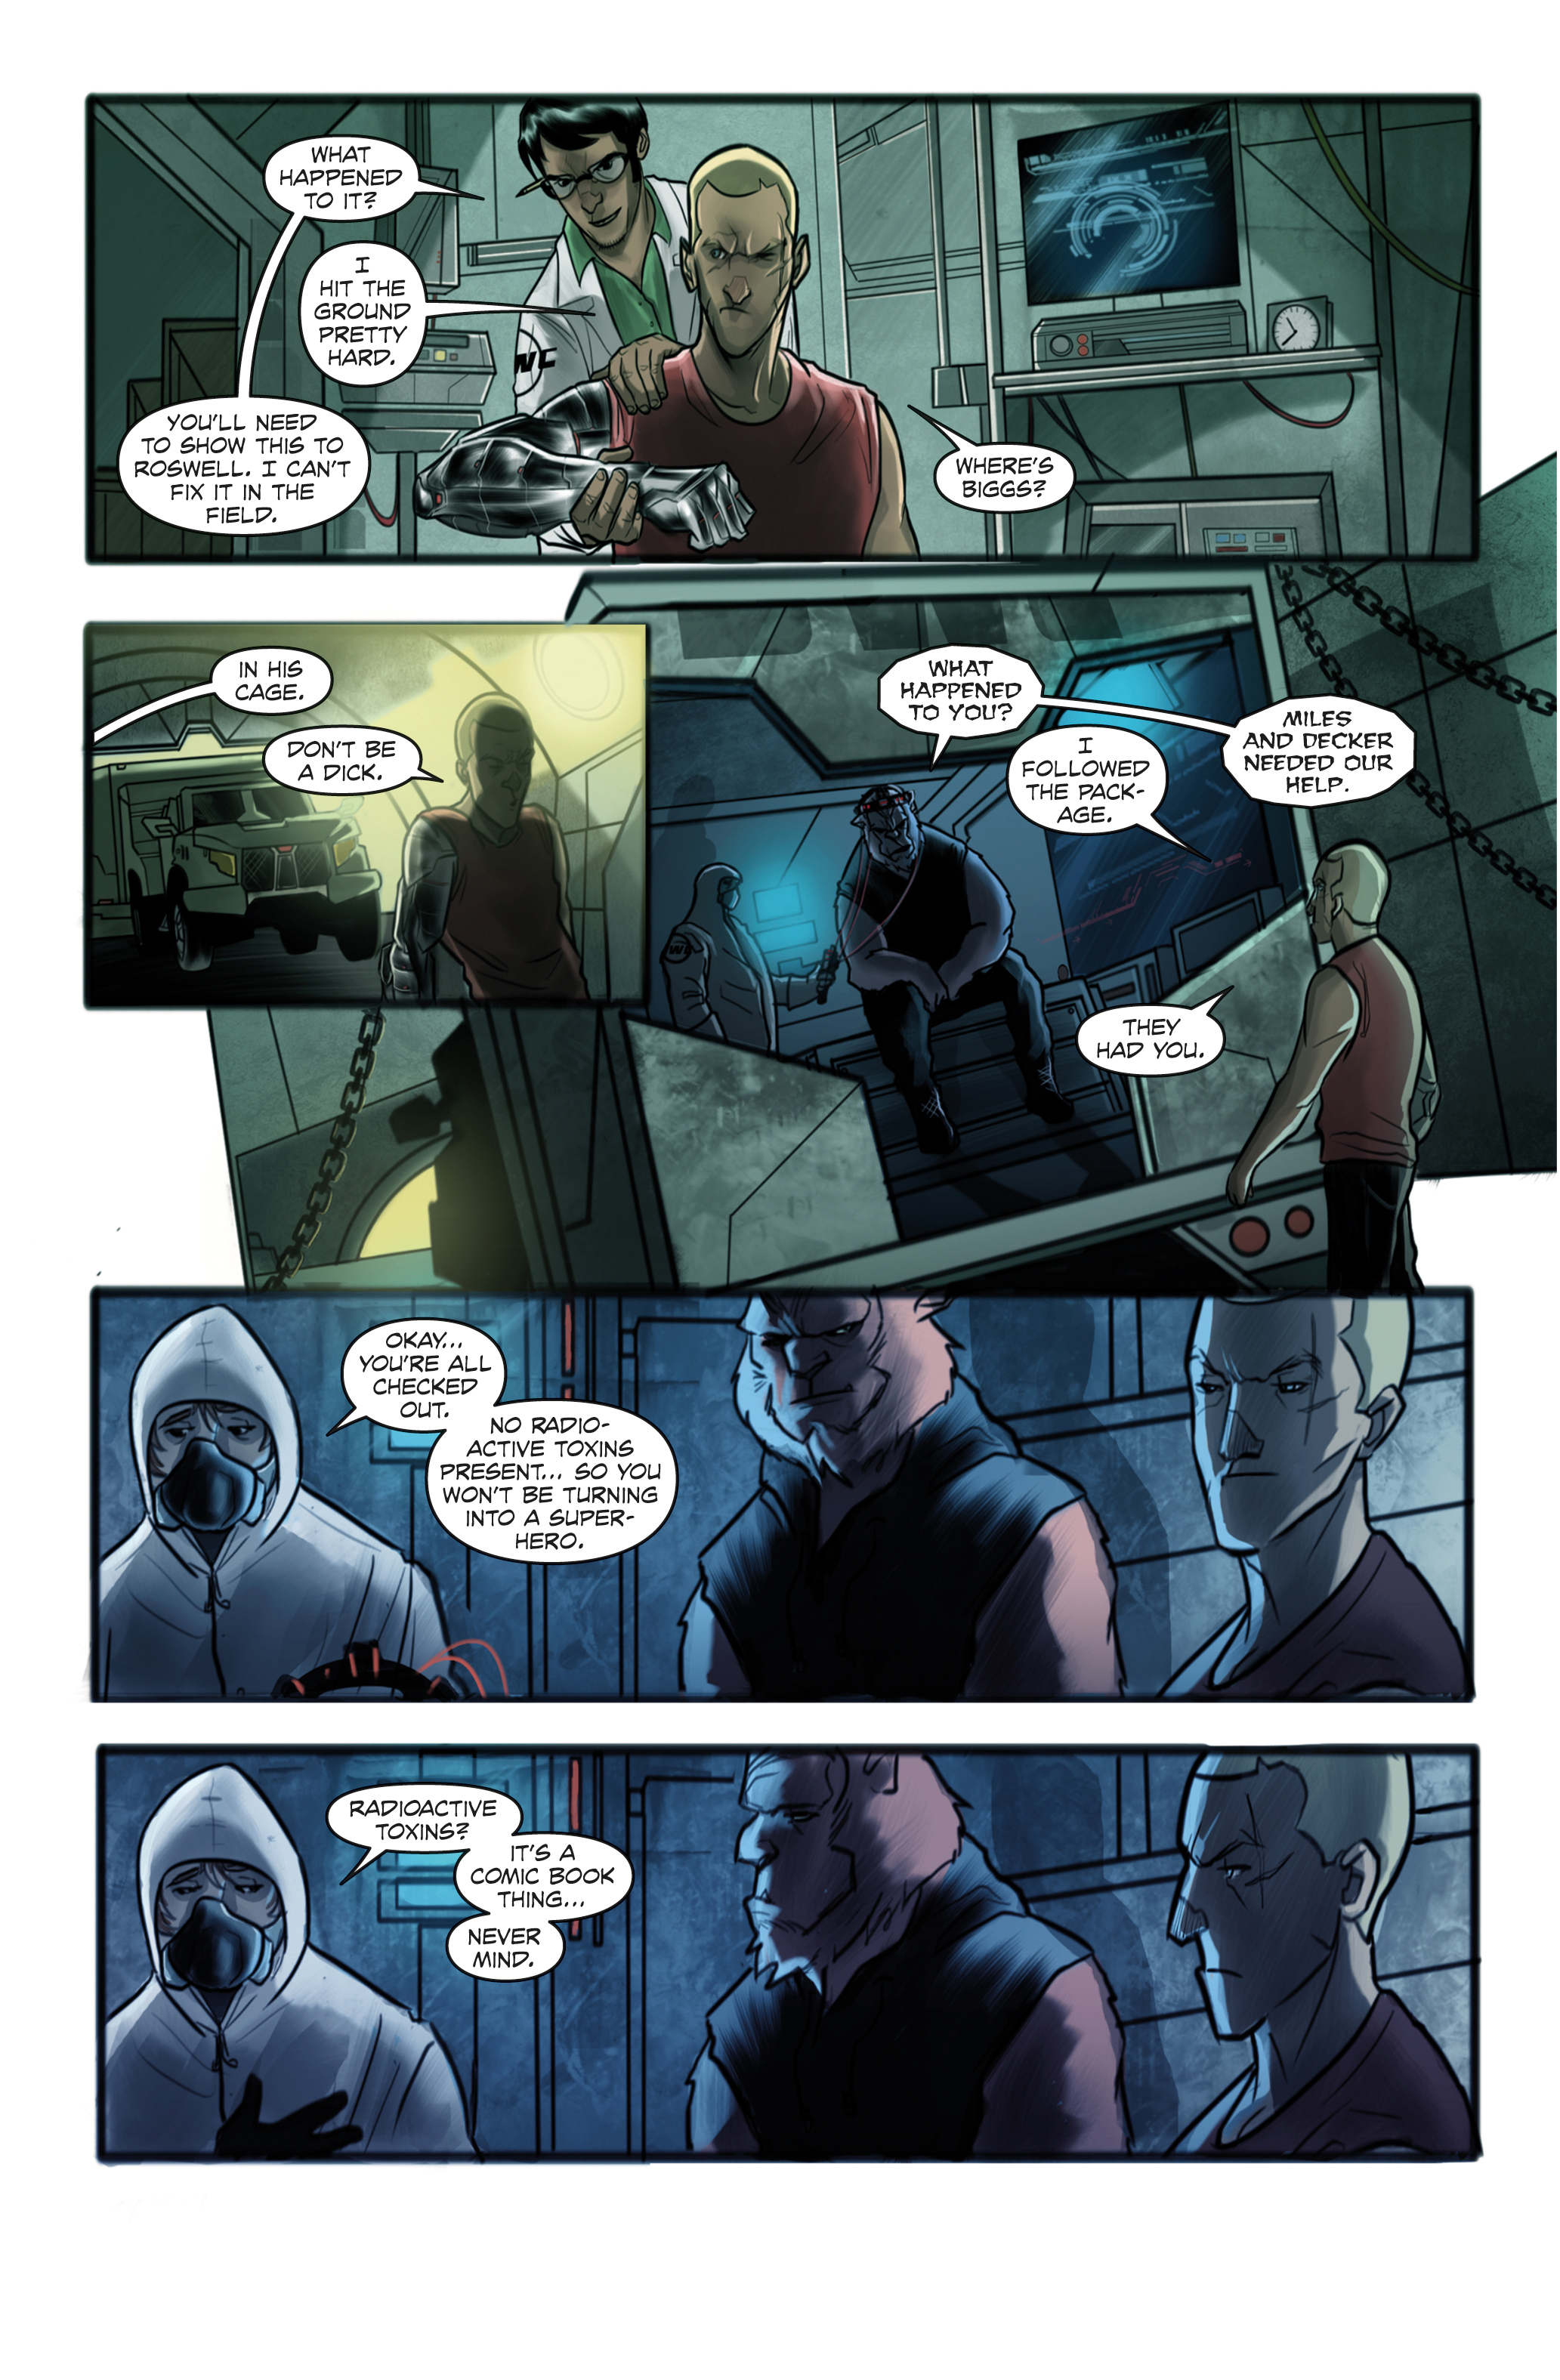 Shelter Division #1 Page 9-01.jpg